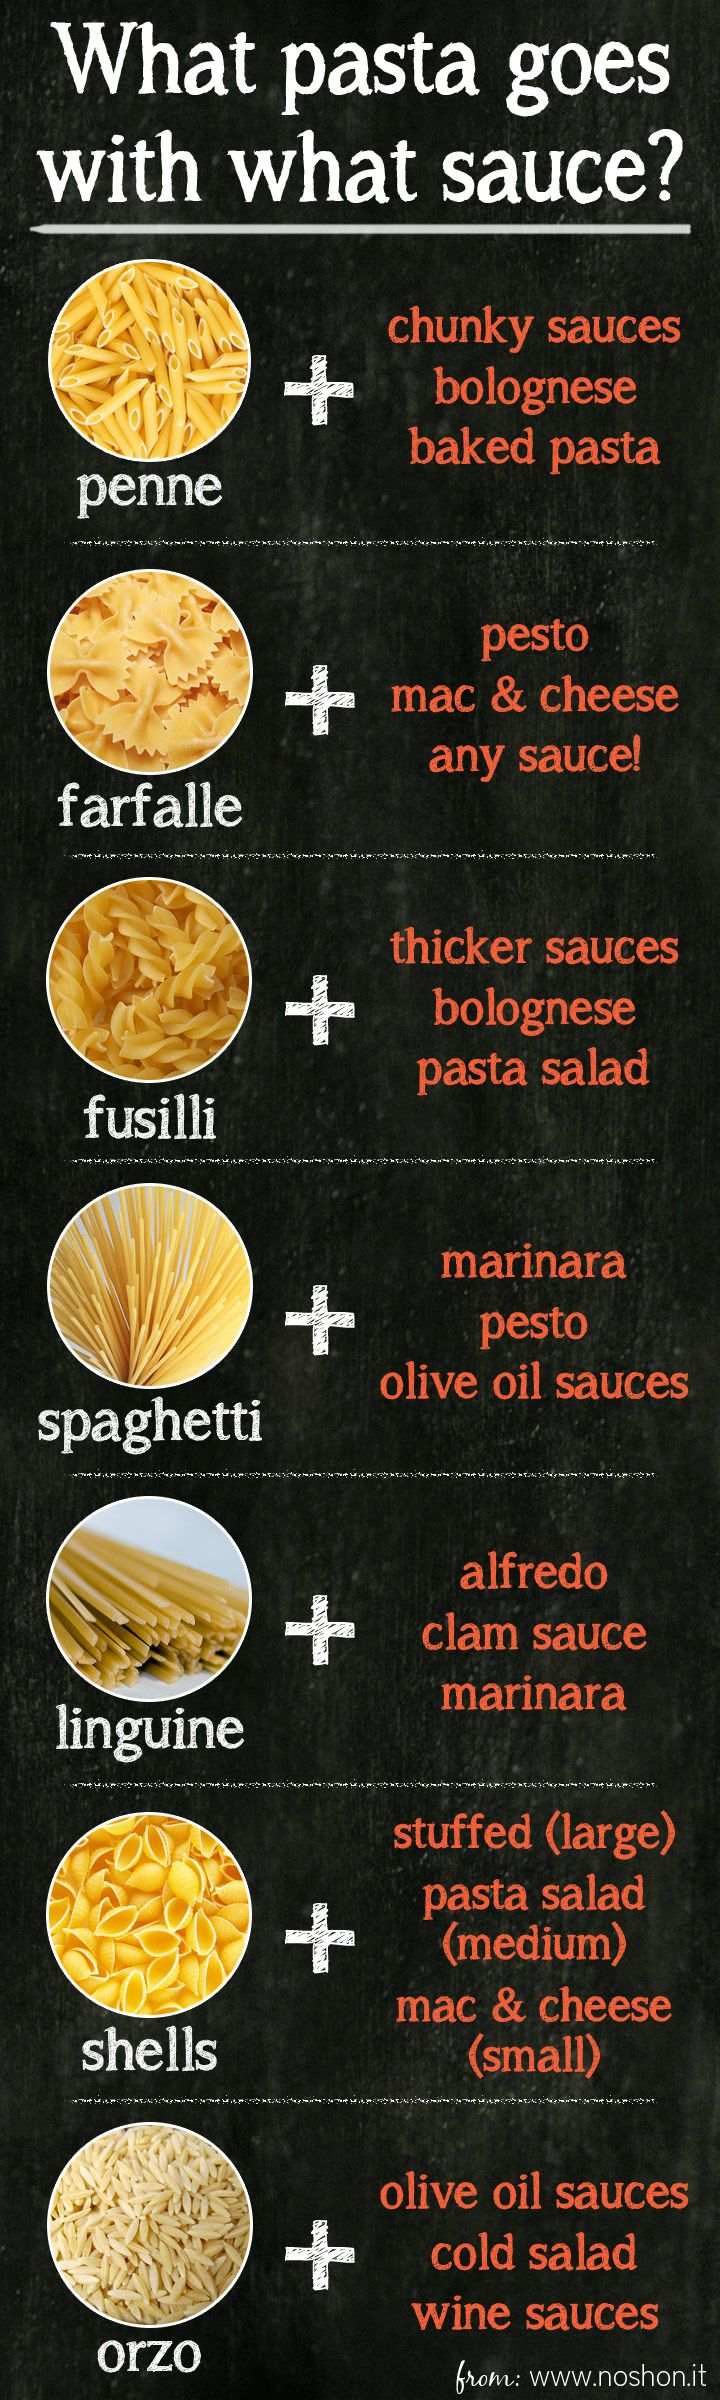 What pasta shapes go with what types of sauces?  But mostly, IDOWHATIWANT